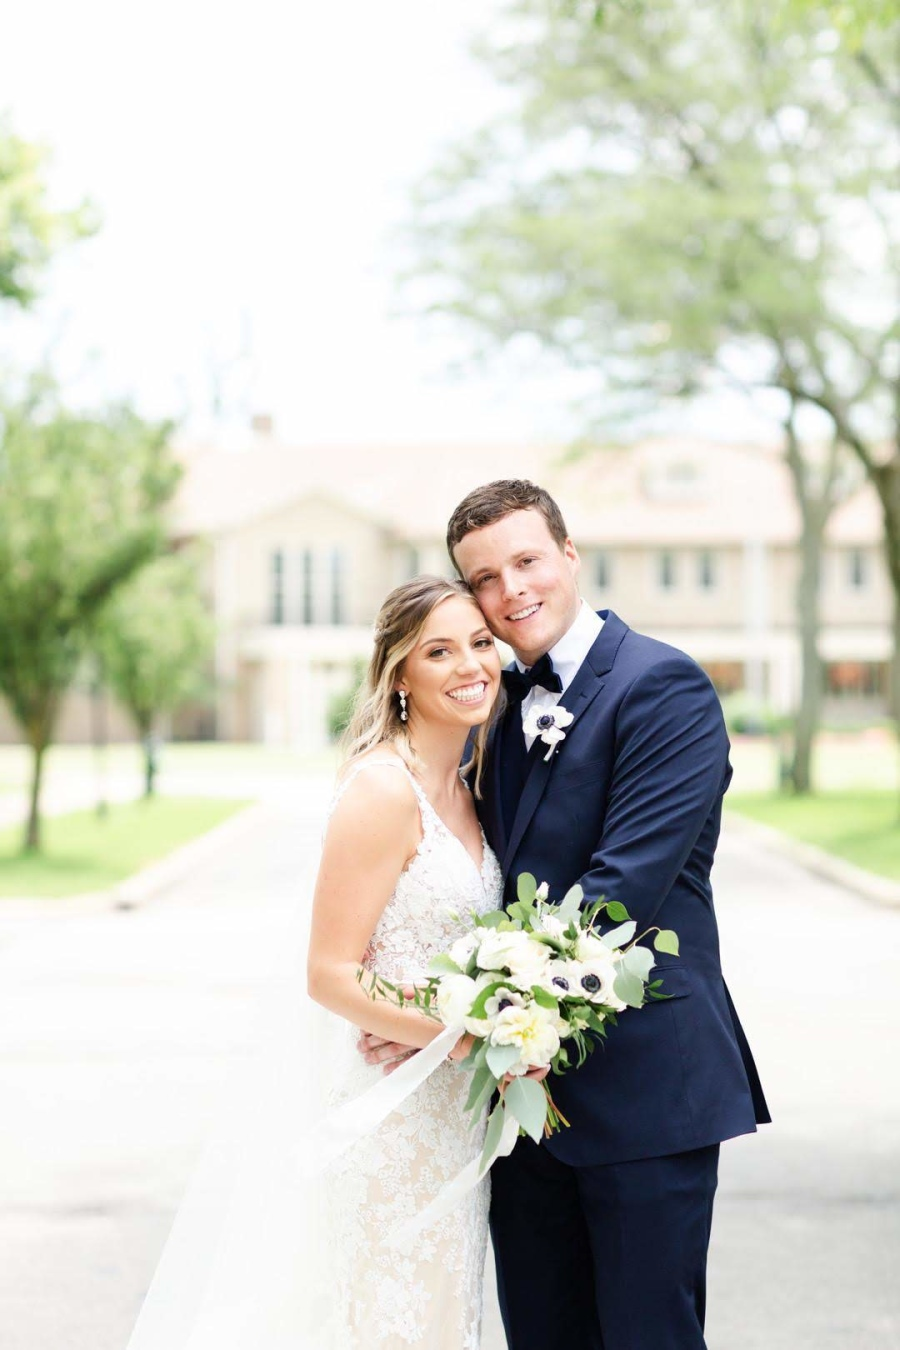 Kayley and Alastair - Real Weddings by The Groomsman Suit